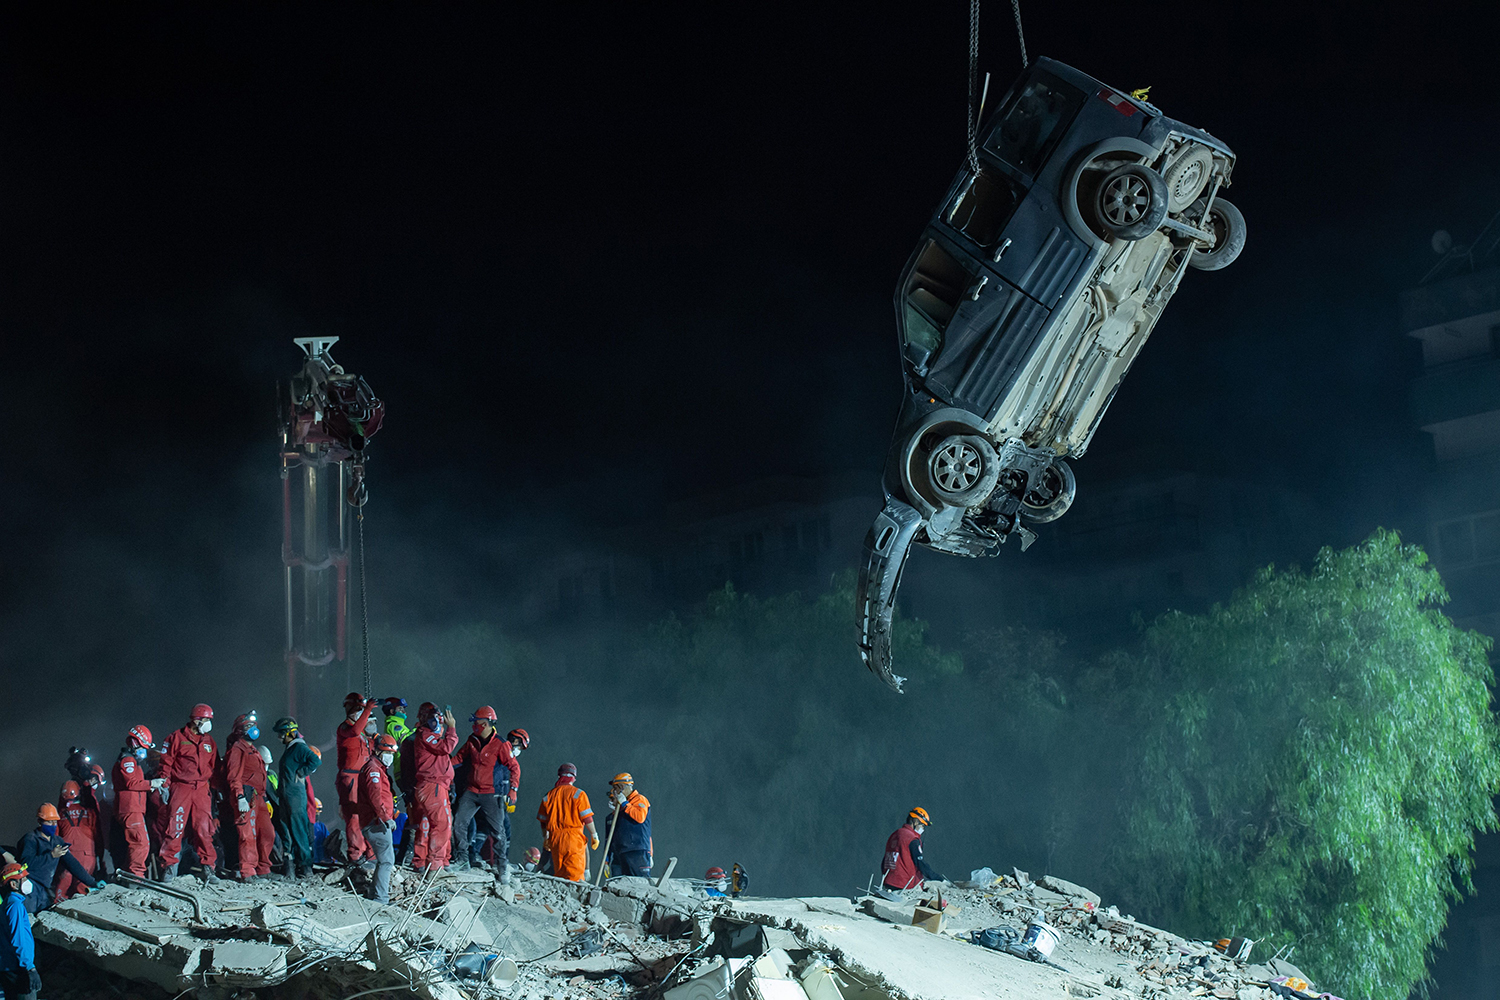 A crane lifts the wreckage of a car as rescue workers search for survivors in the debris of a collapsed building in the Bayrakli district of Izmir, Turkey, on Nov. 1 after a 7.0-magnitude earthquake struck Turkey's western coast and parts of Greece. AFP via Getty Images